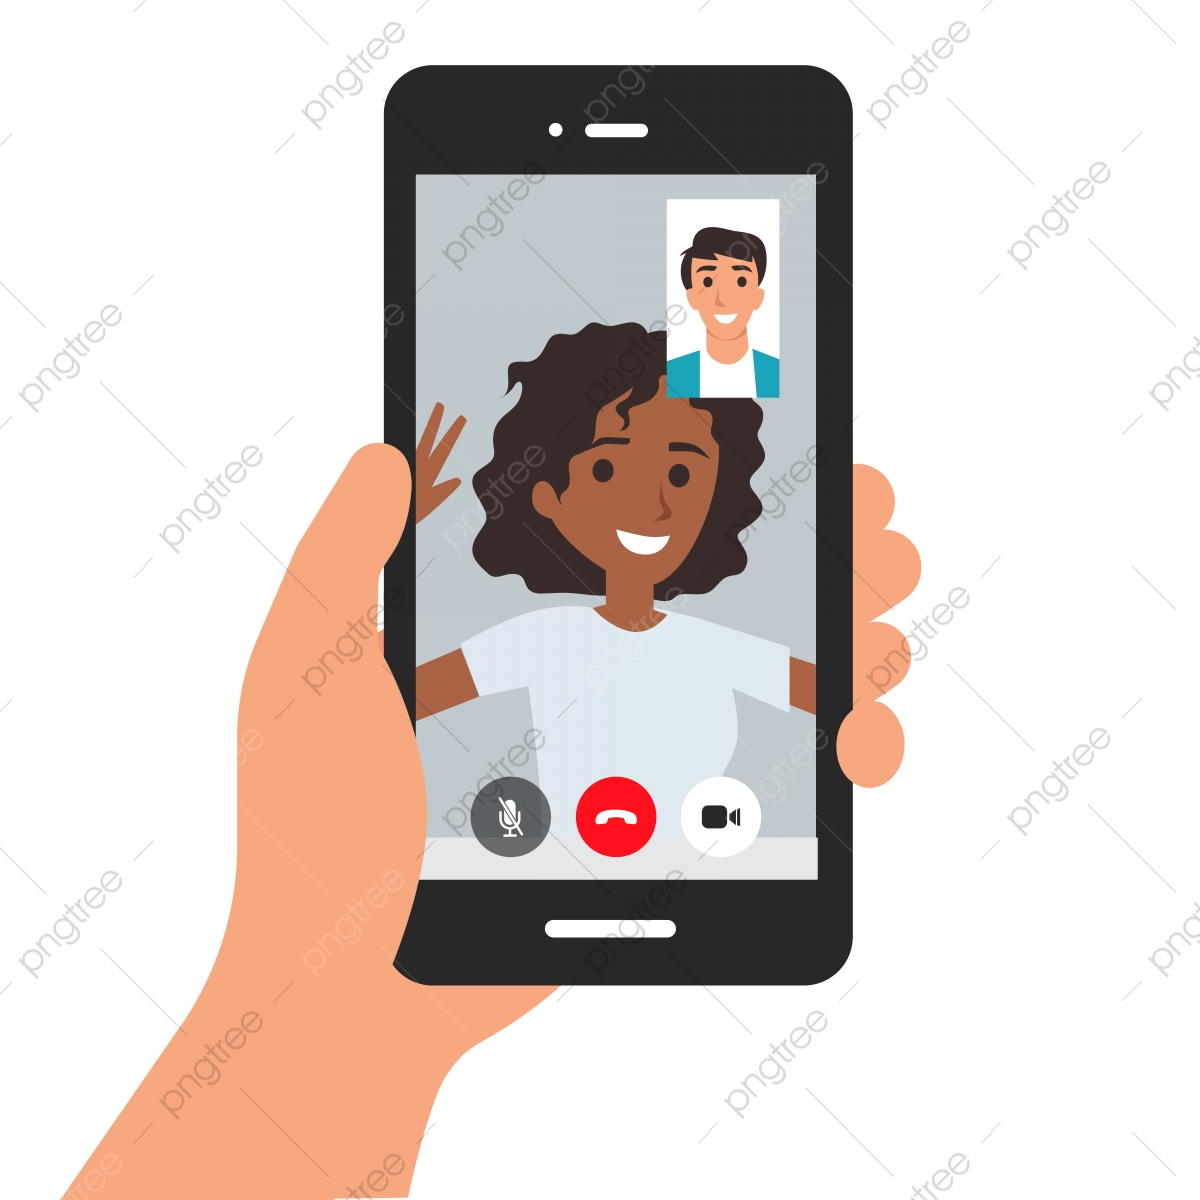 Smart Phone Png Vector Psd And Clipart With Transparent Background For Free Download Pngtree